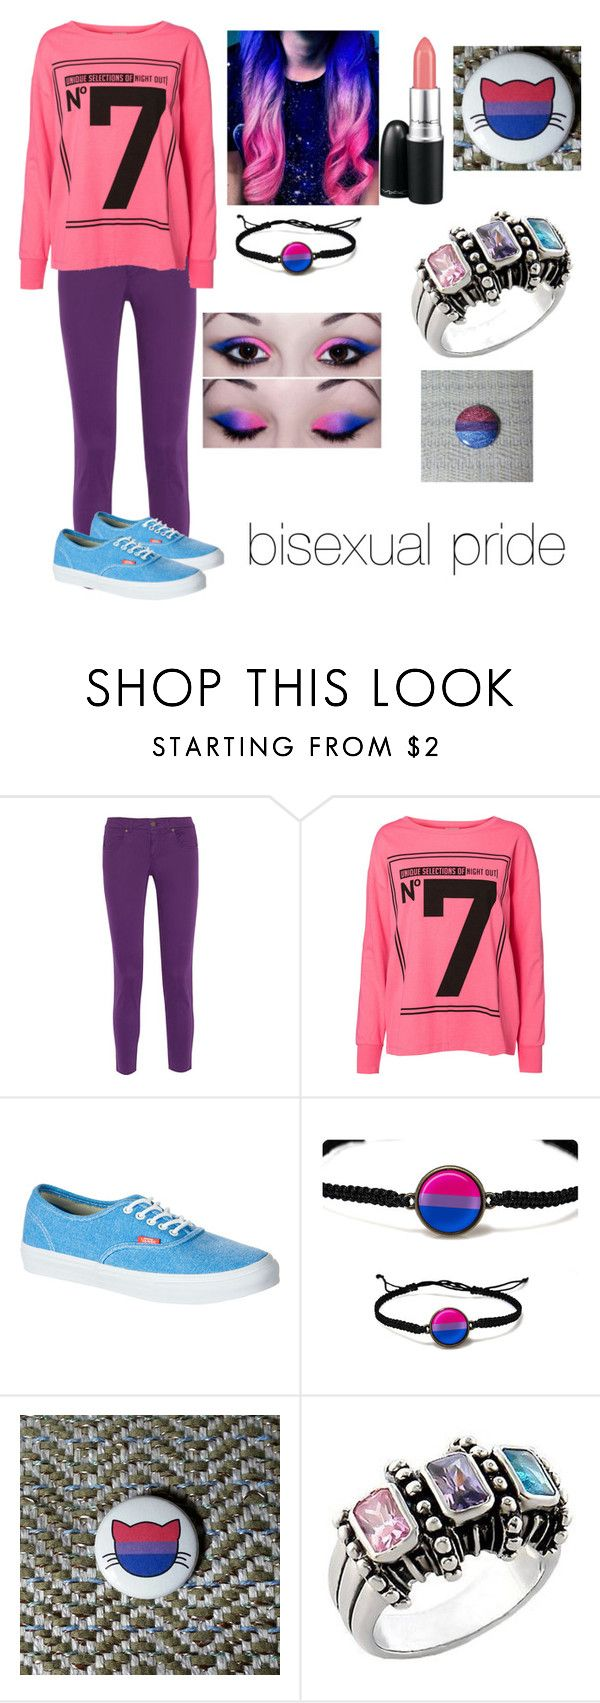 fb501f2ea3d1 bisexual pride by bailey-w ❤ liked on Polyvore featuring STELLA McCARTNEY